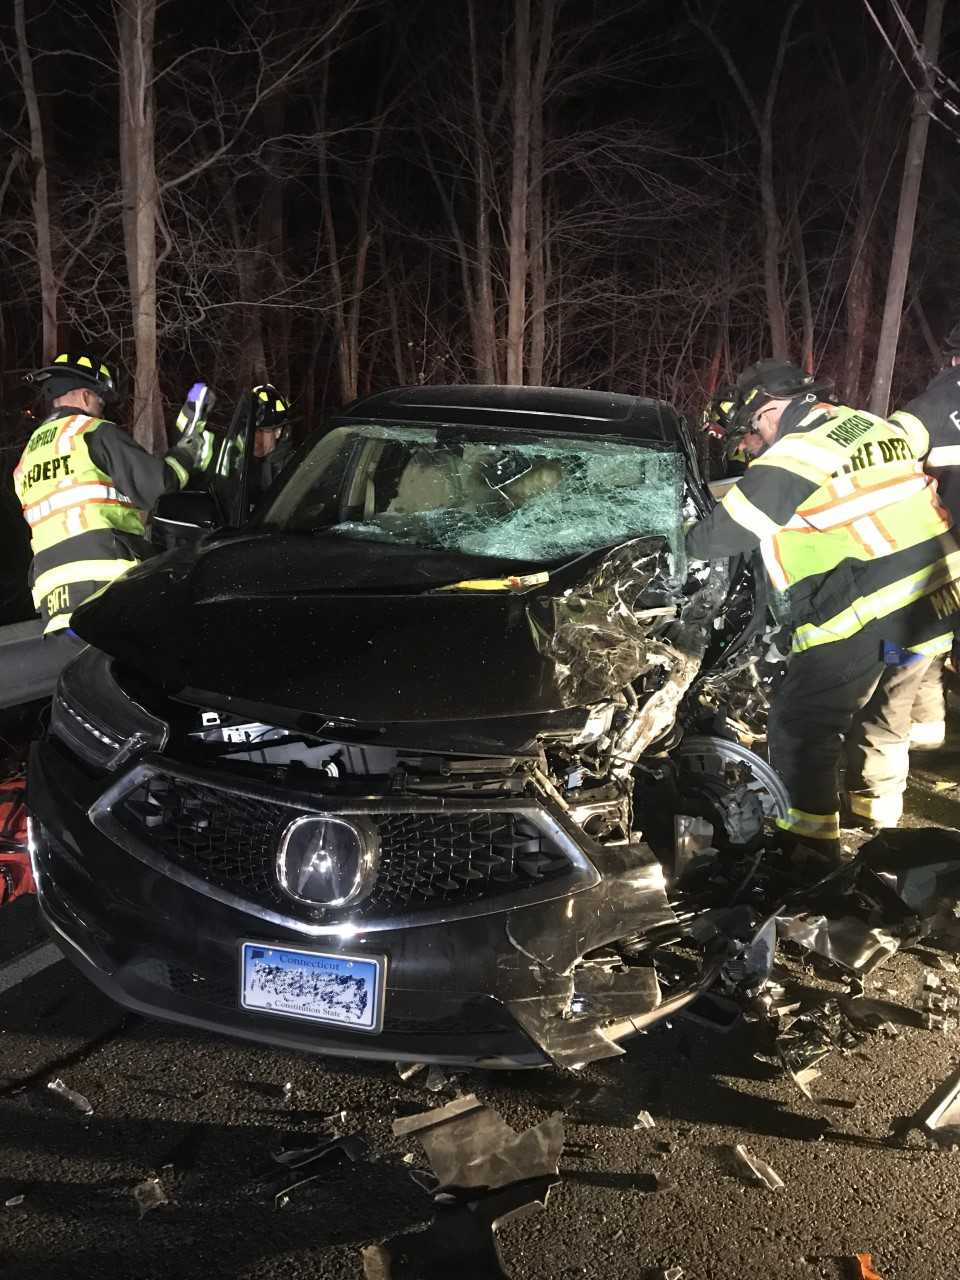 Fairfield firefighters, police rescue victims in late-night